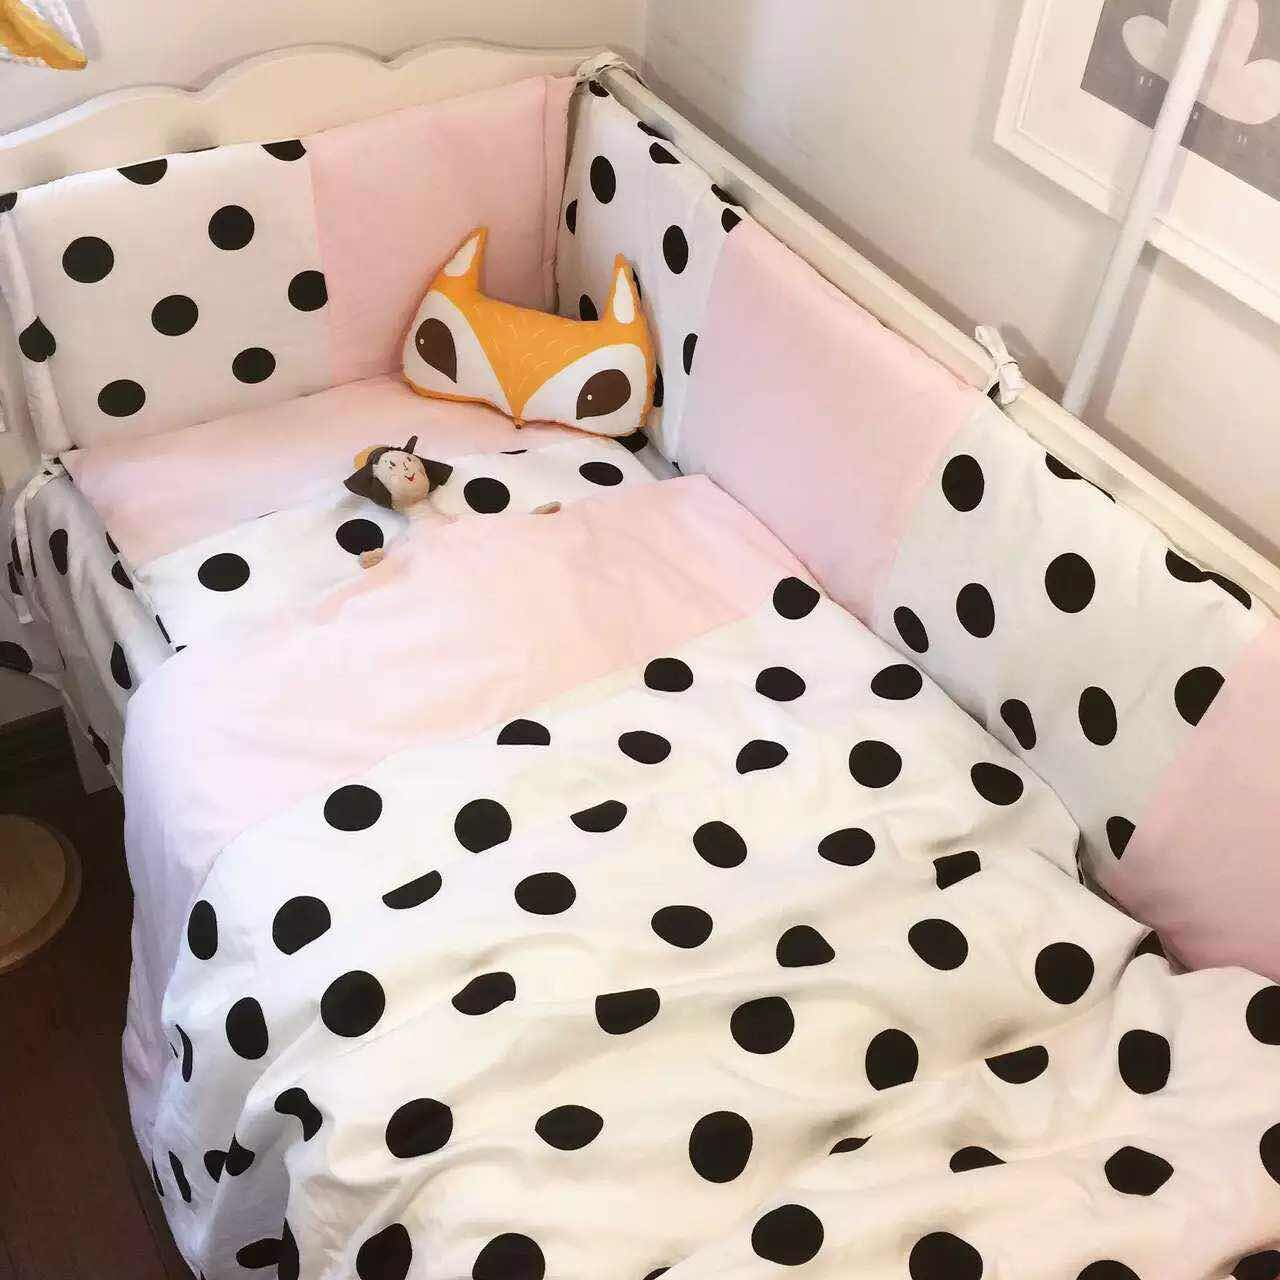 3cps/set 100% cotton Hot baby Bedding set include pillowcase flat sheet quilt cover pink  blue and Polka Dot<br><br>Aliexpress